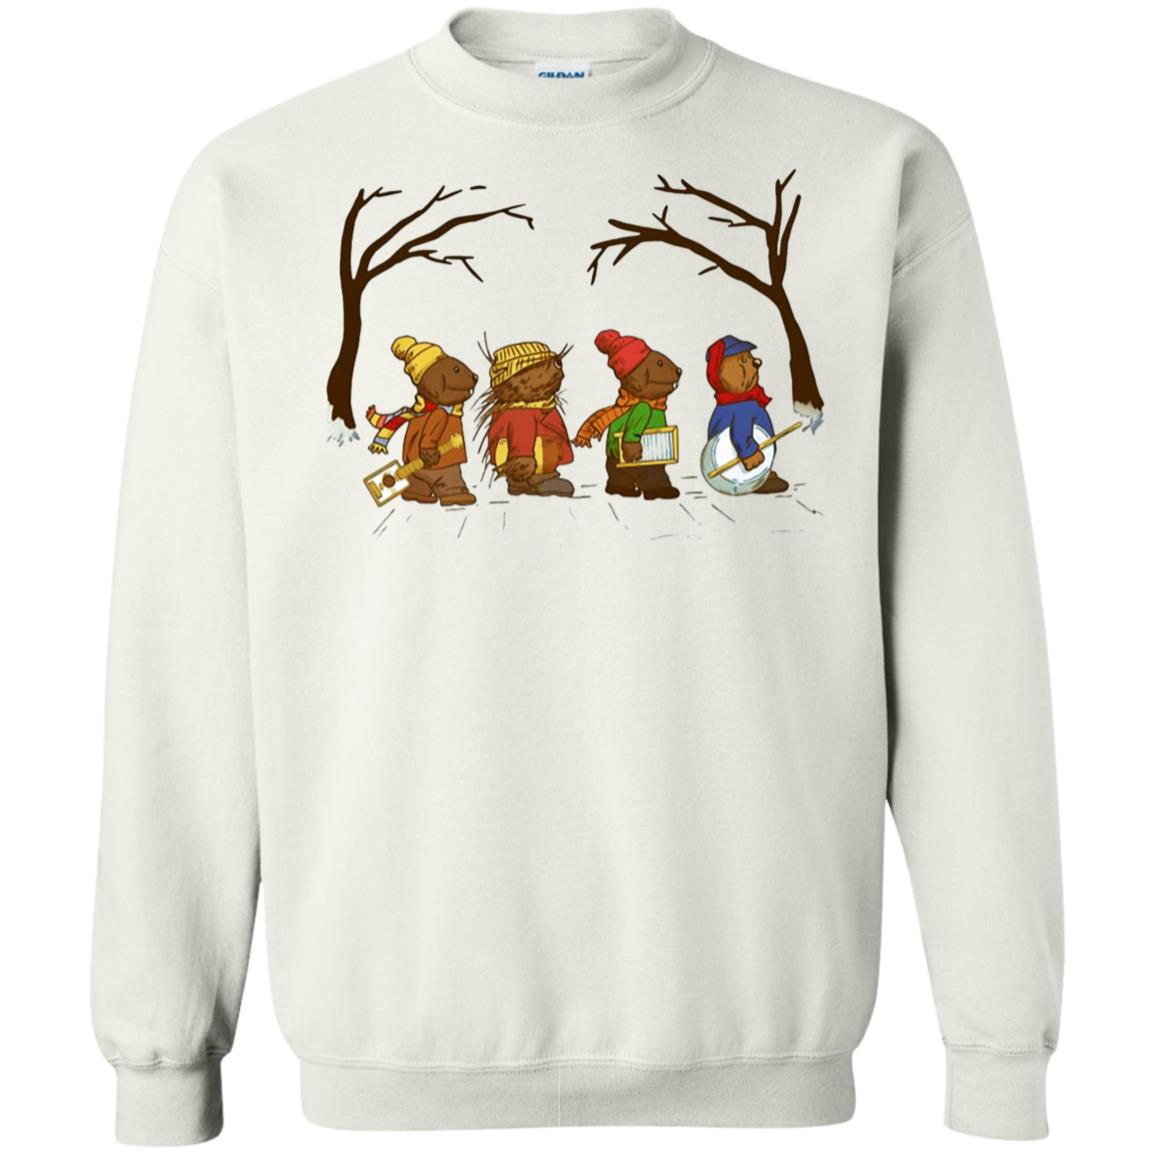 Emmet Otters Jug Band Christmas Sweatshirt, Shirt - Therockin